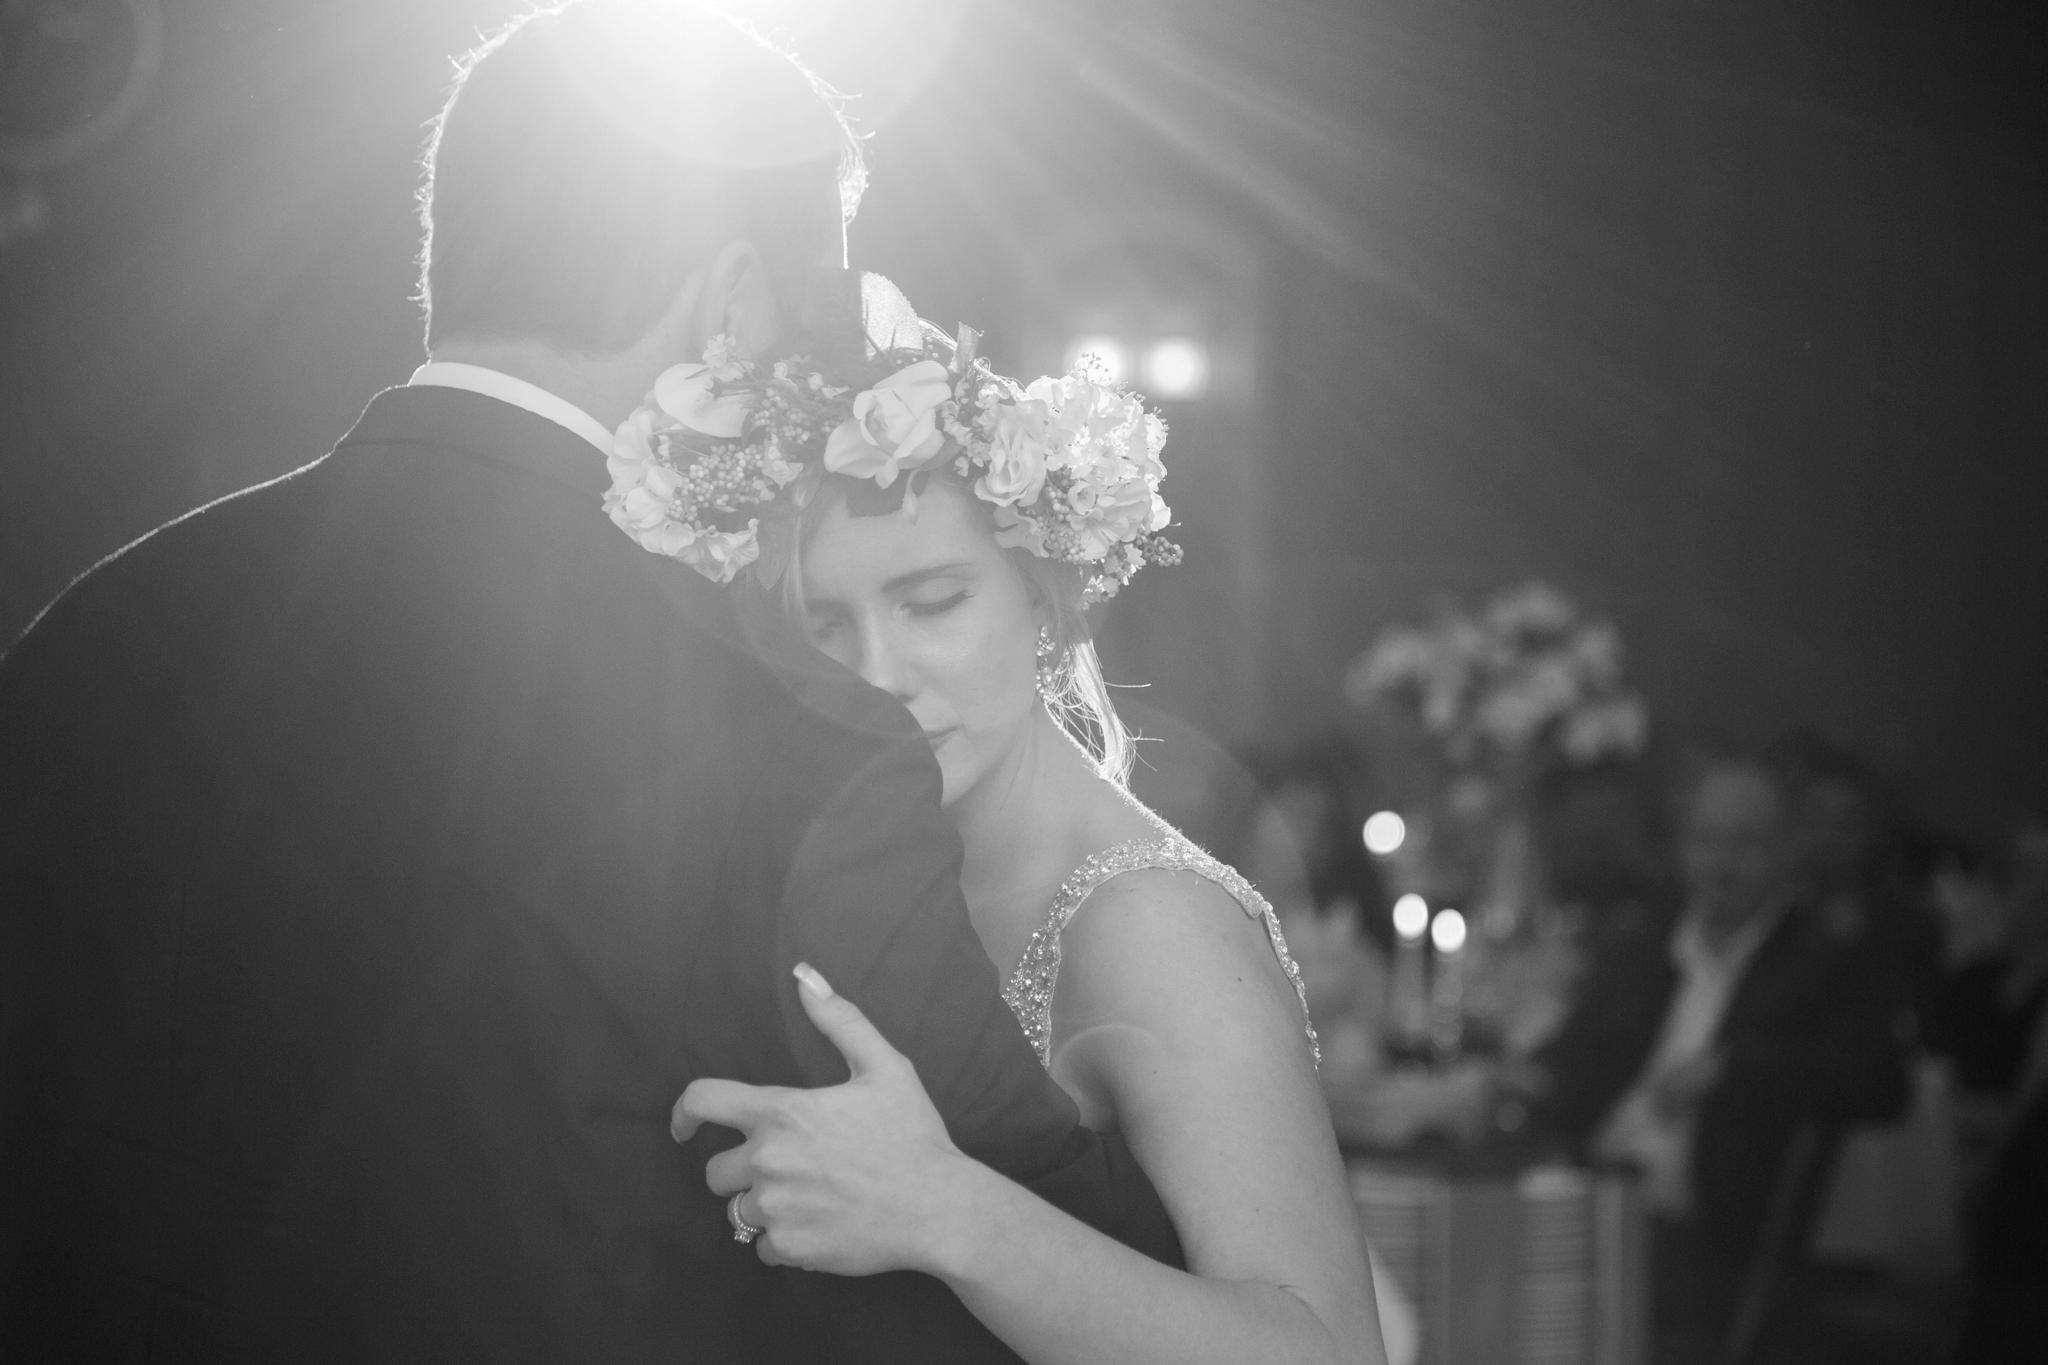 tunkhannock_pa_wedding_photographer_3606.jpg